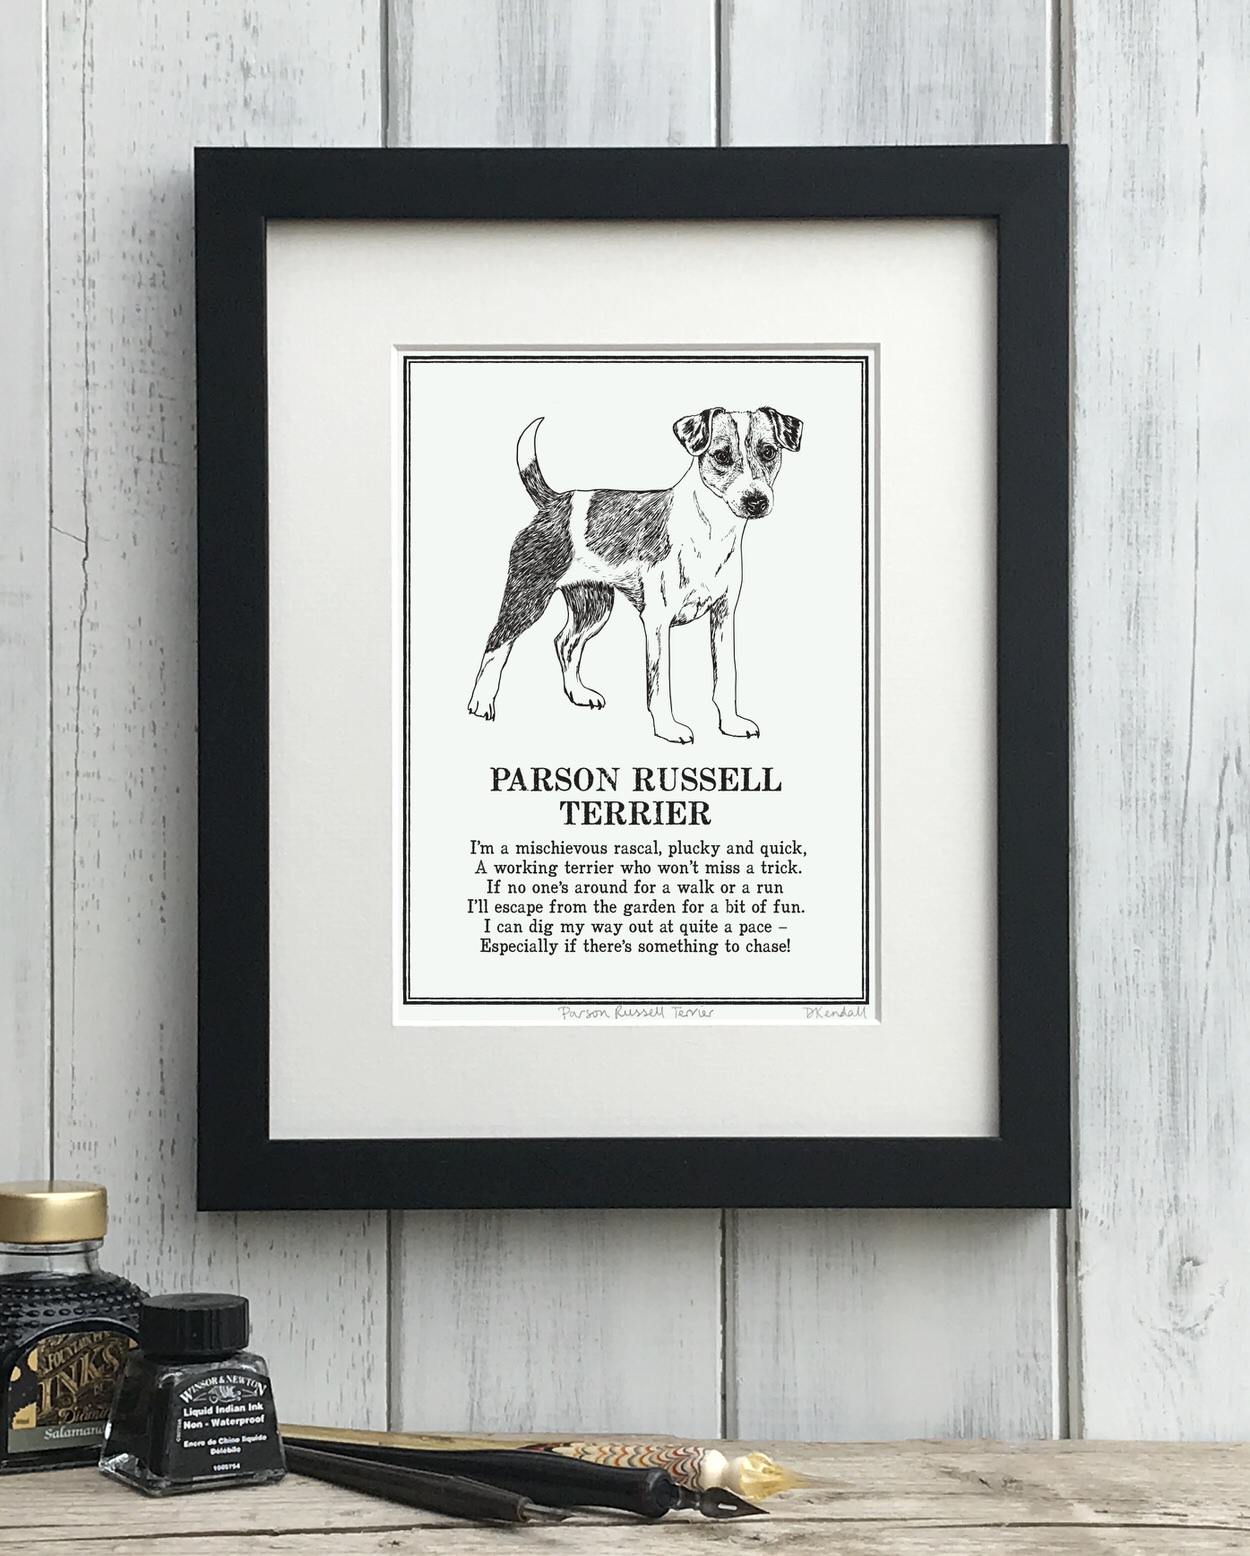 Parson Russell Terrier print illustrated poem by The Enlightened Hound